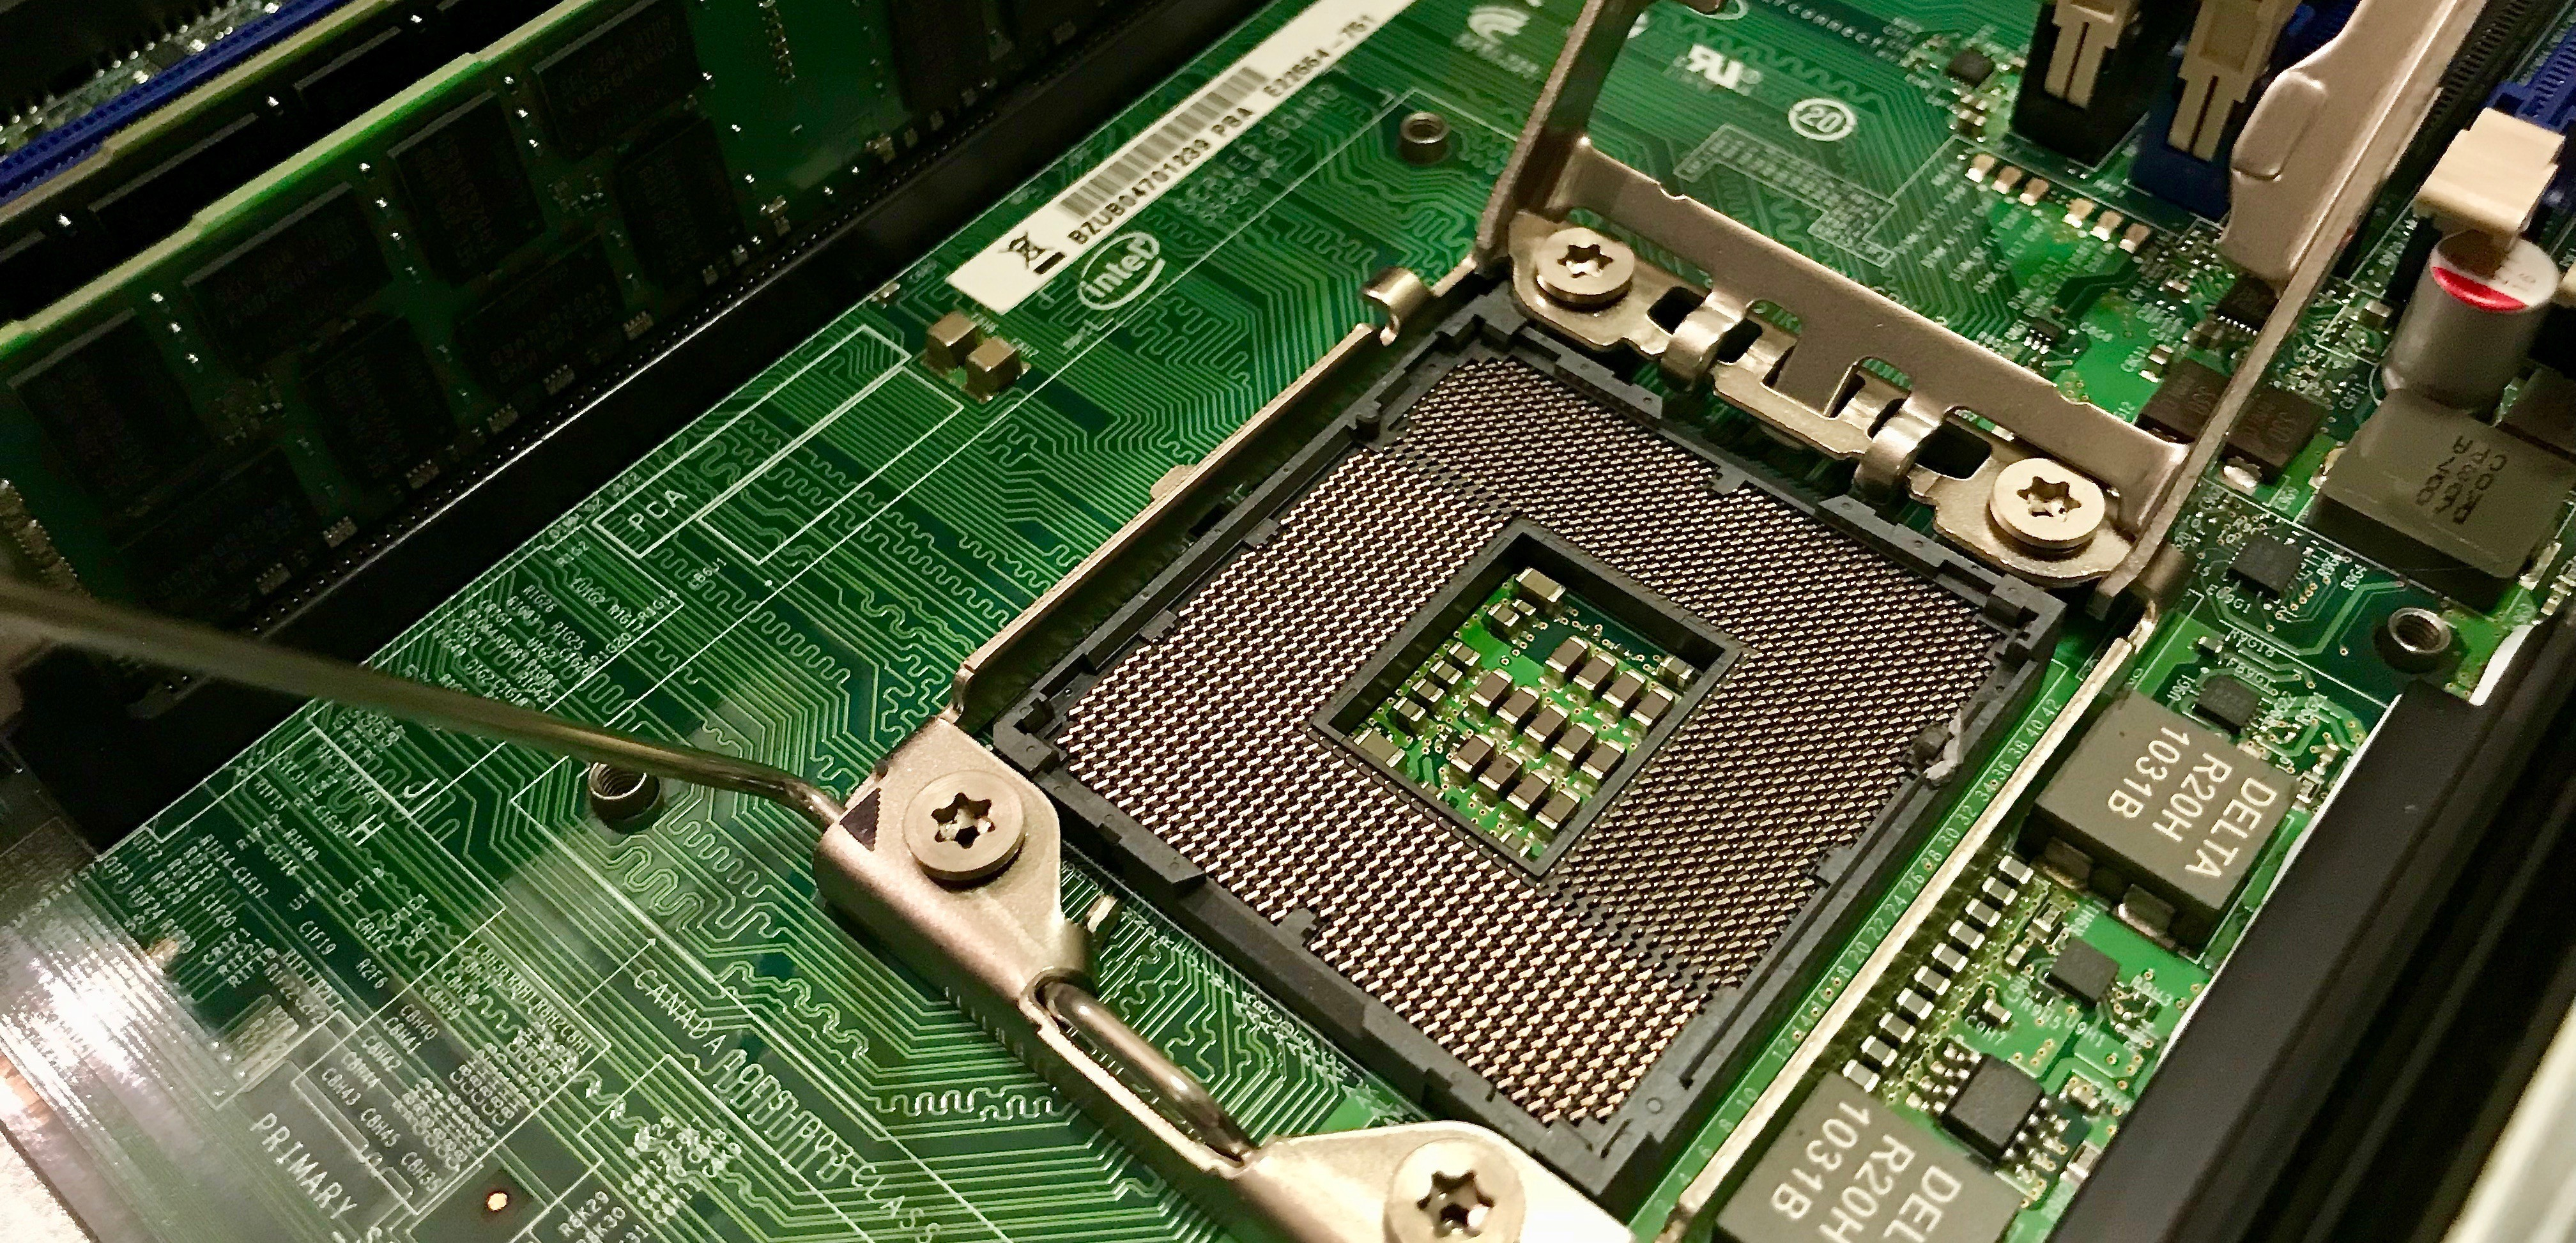 Intel Xeon L5640 and L5630 vs X5570 and X5550 Performance and Power